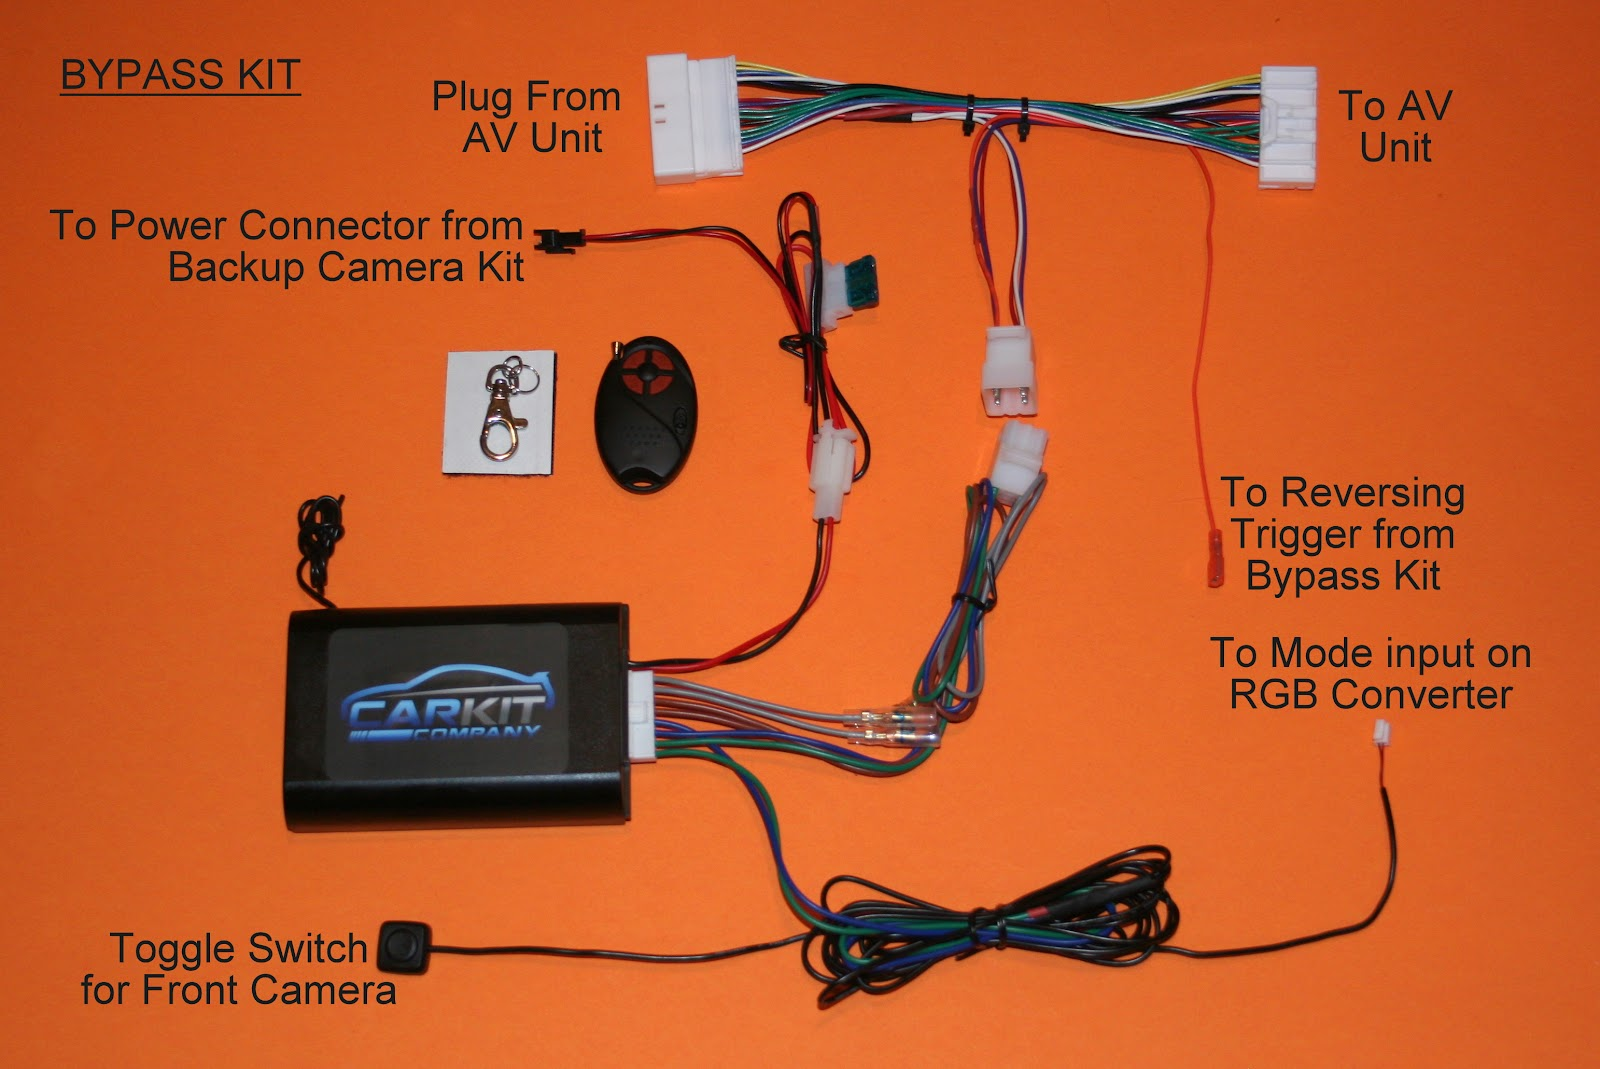 FOR US2009-10 Cars please take a look at the Newer V3 Bypass Kit for  US2009-10